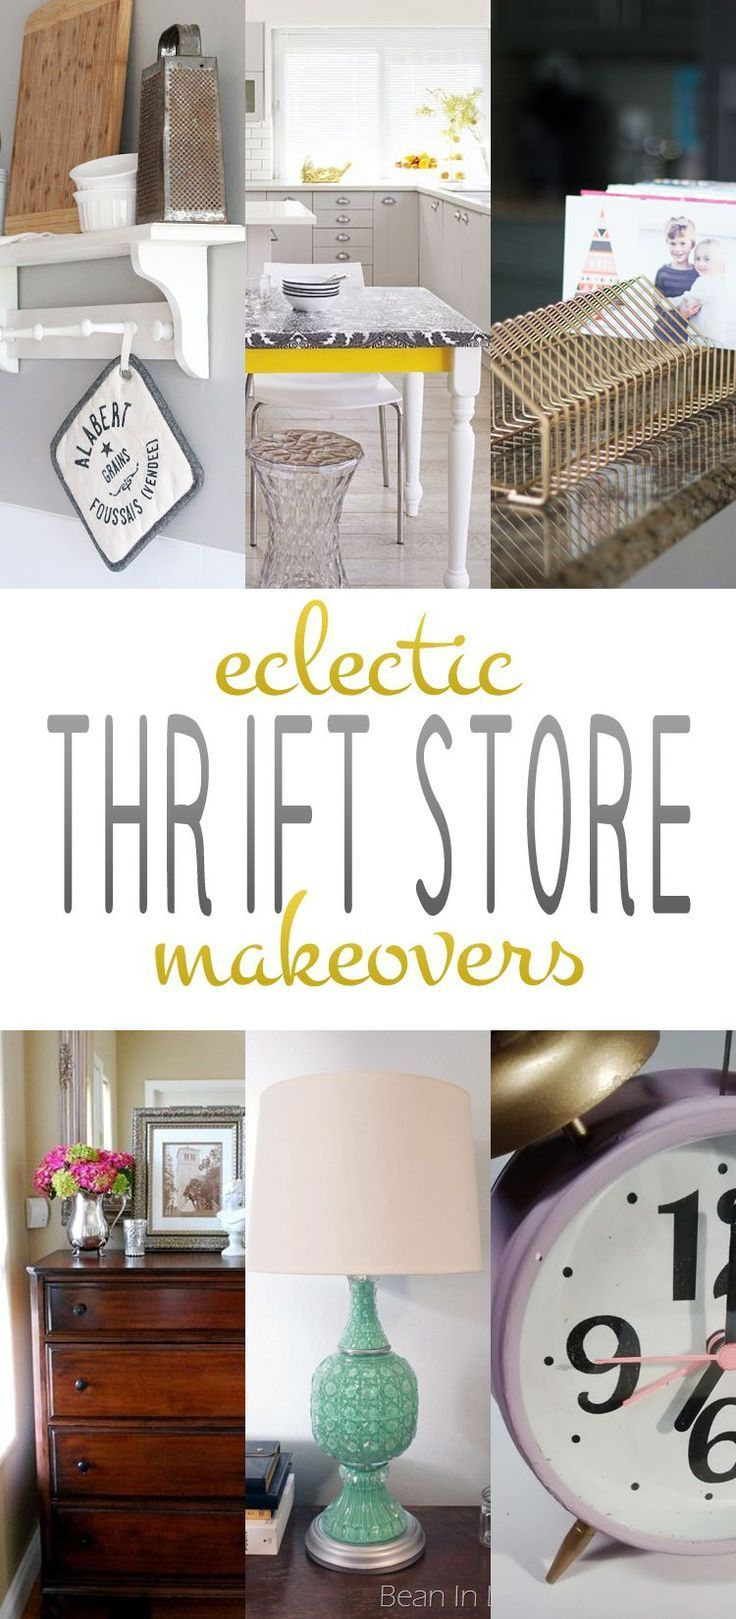 Eclectic Thrift Store Makeovers #thriftstorefinds Eclectic Thrift Store Makeovers #thriftstorefinds